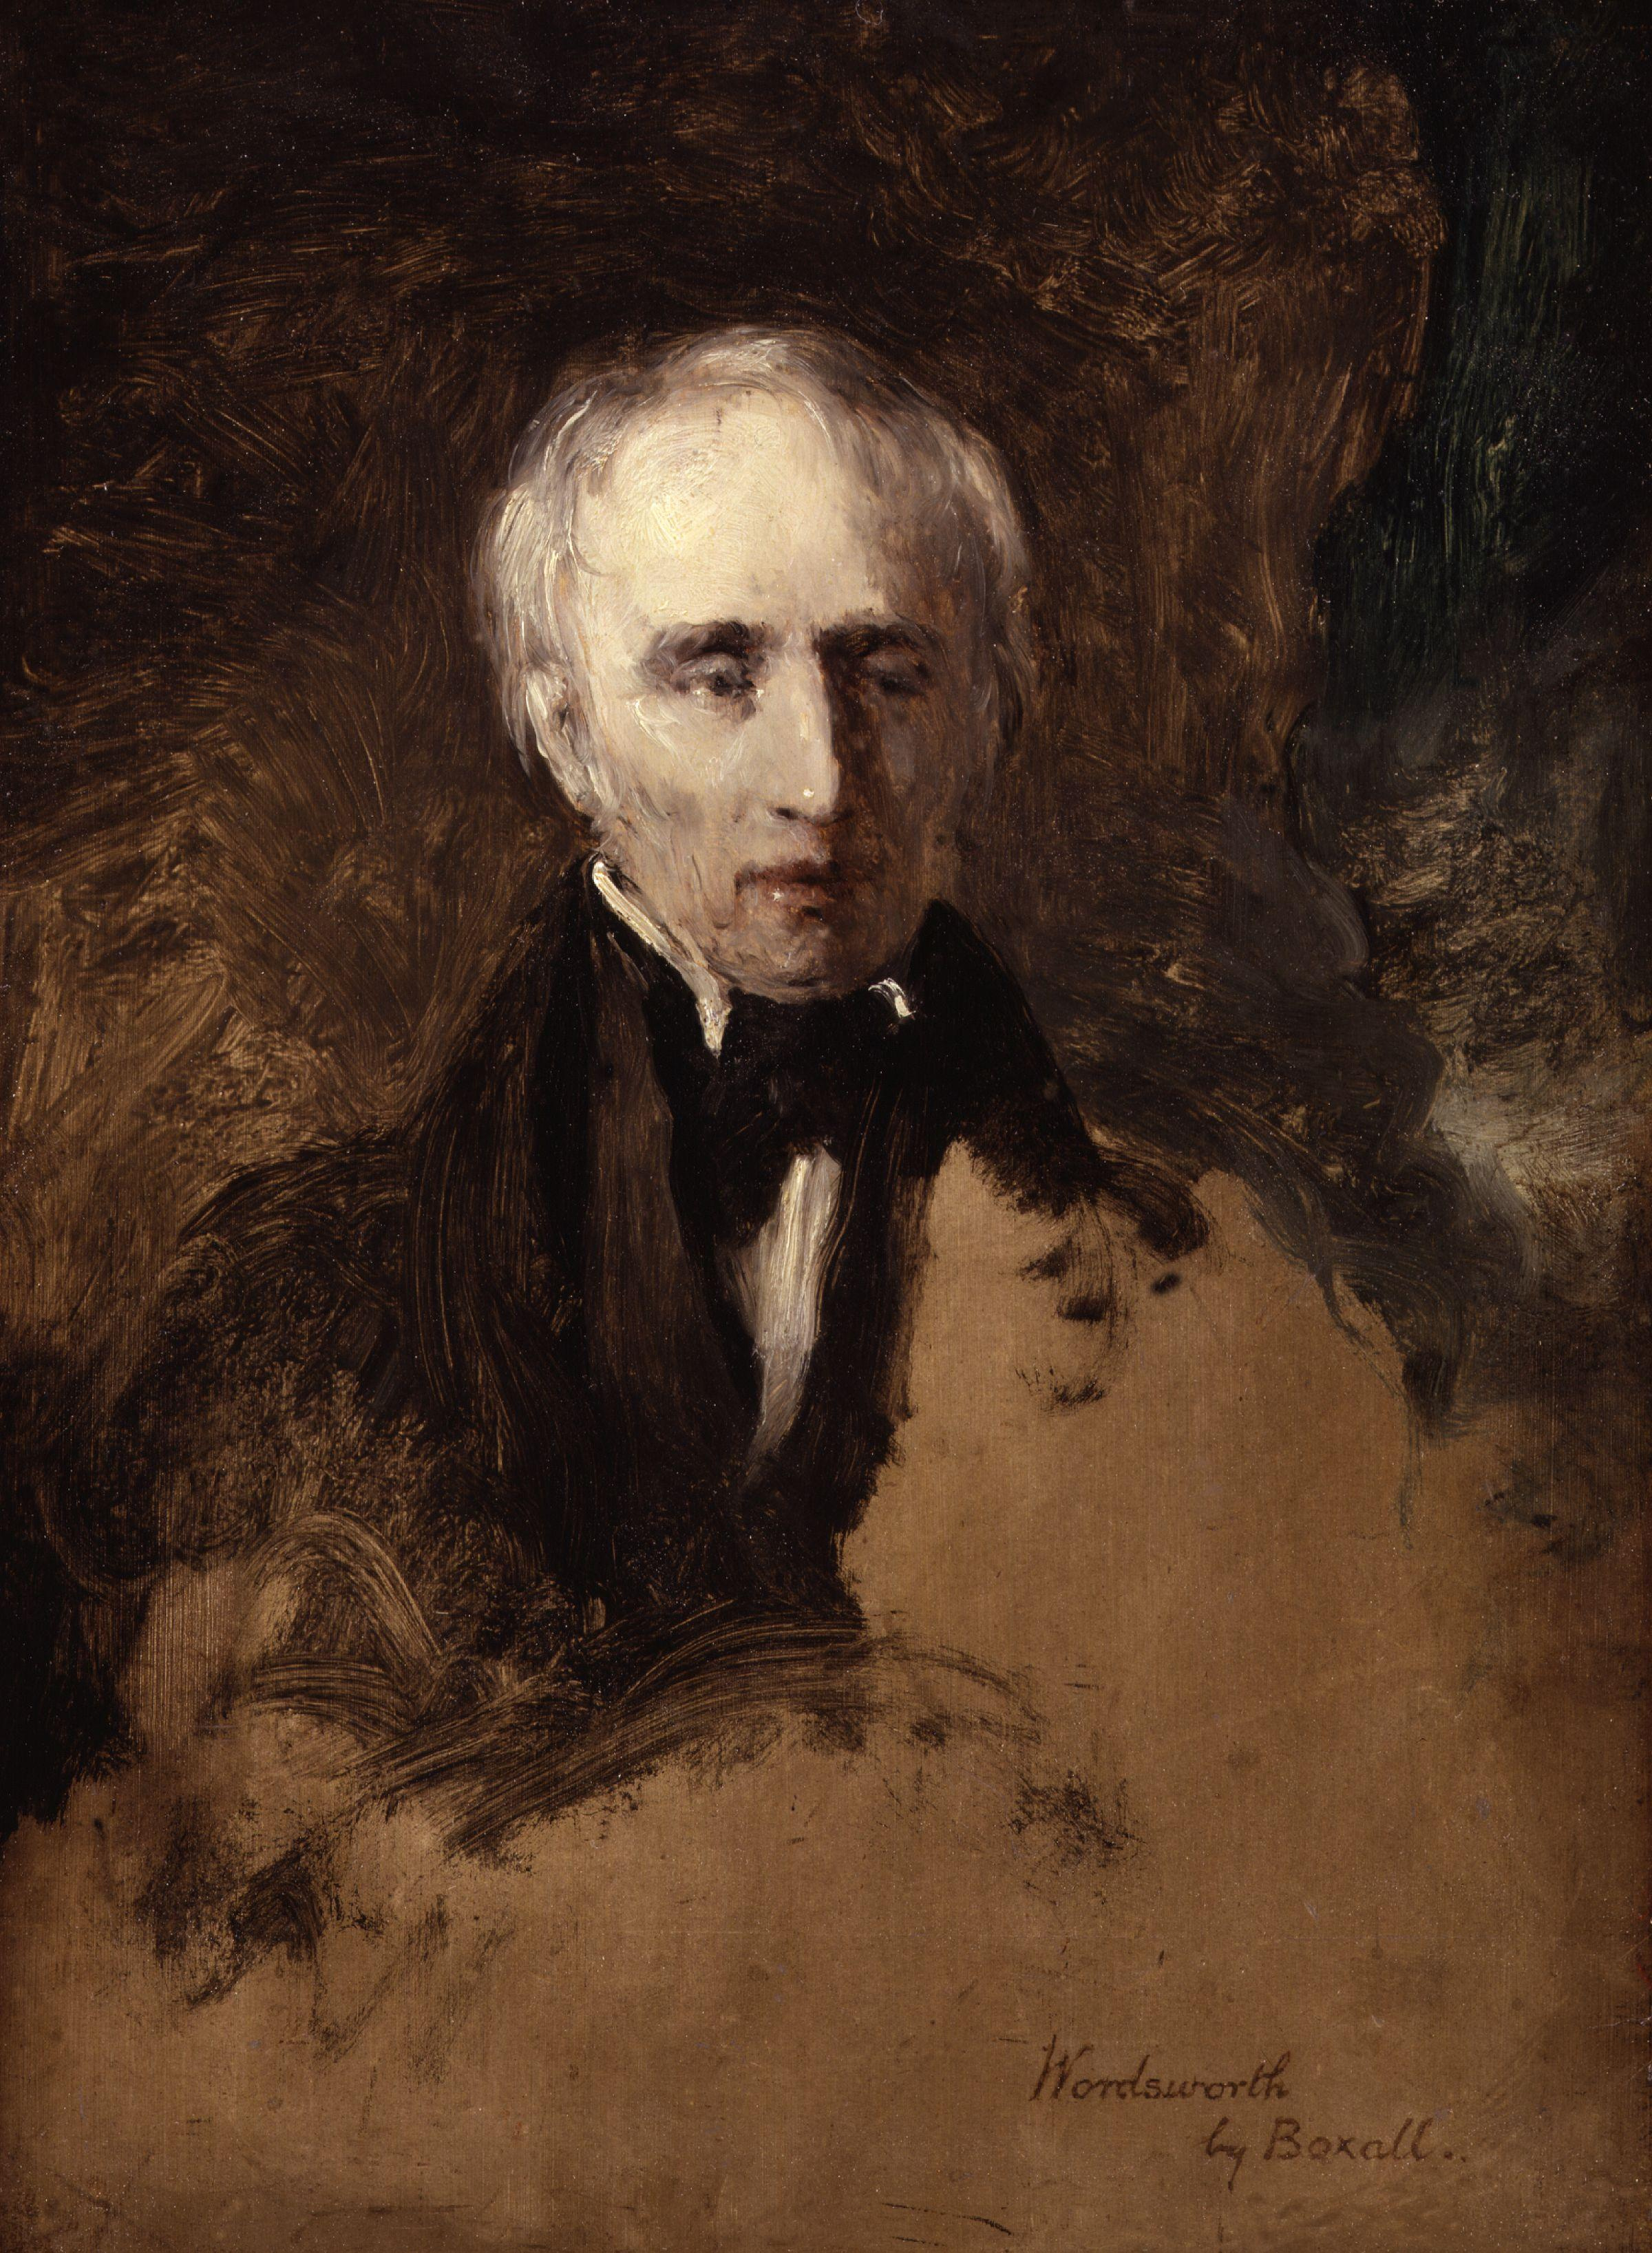 william wordsworth The prelude, an autobiographic epic poem in 14 sections, is said to be one of the greatest works of english literature the first version was written in 1798 but wordsworth continued to.